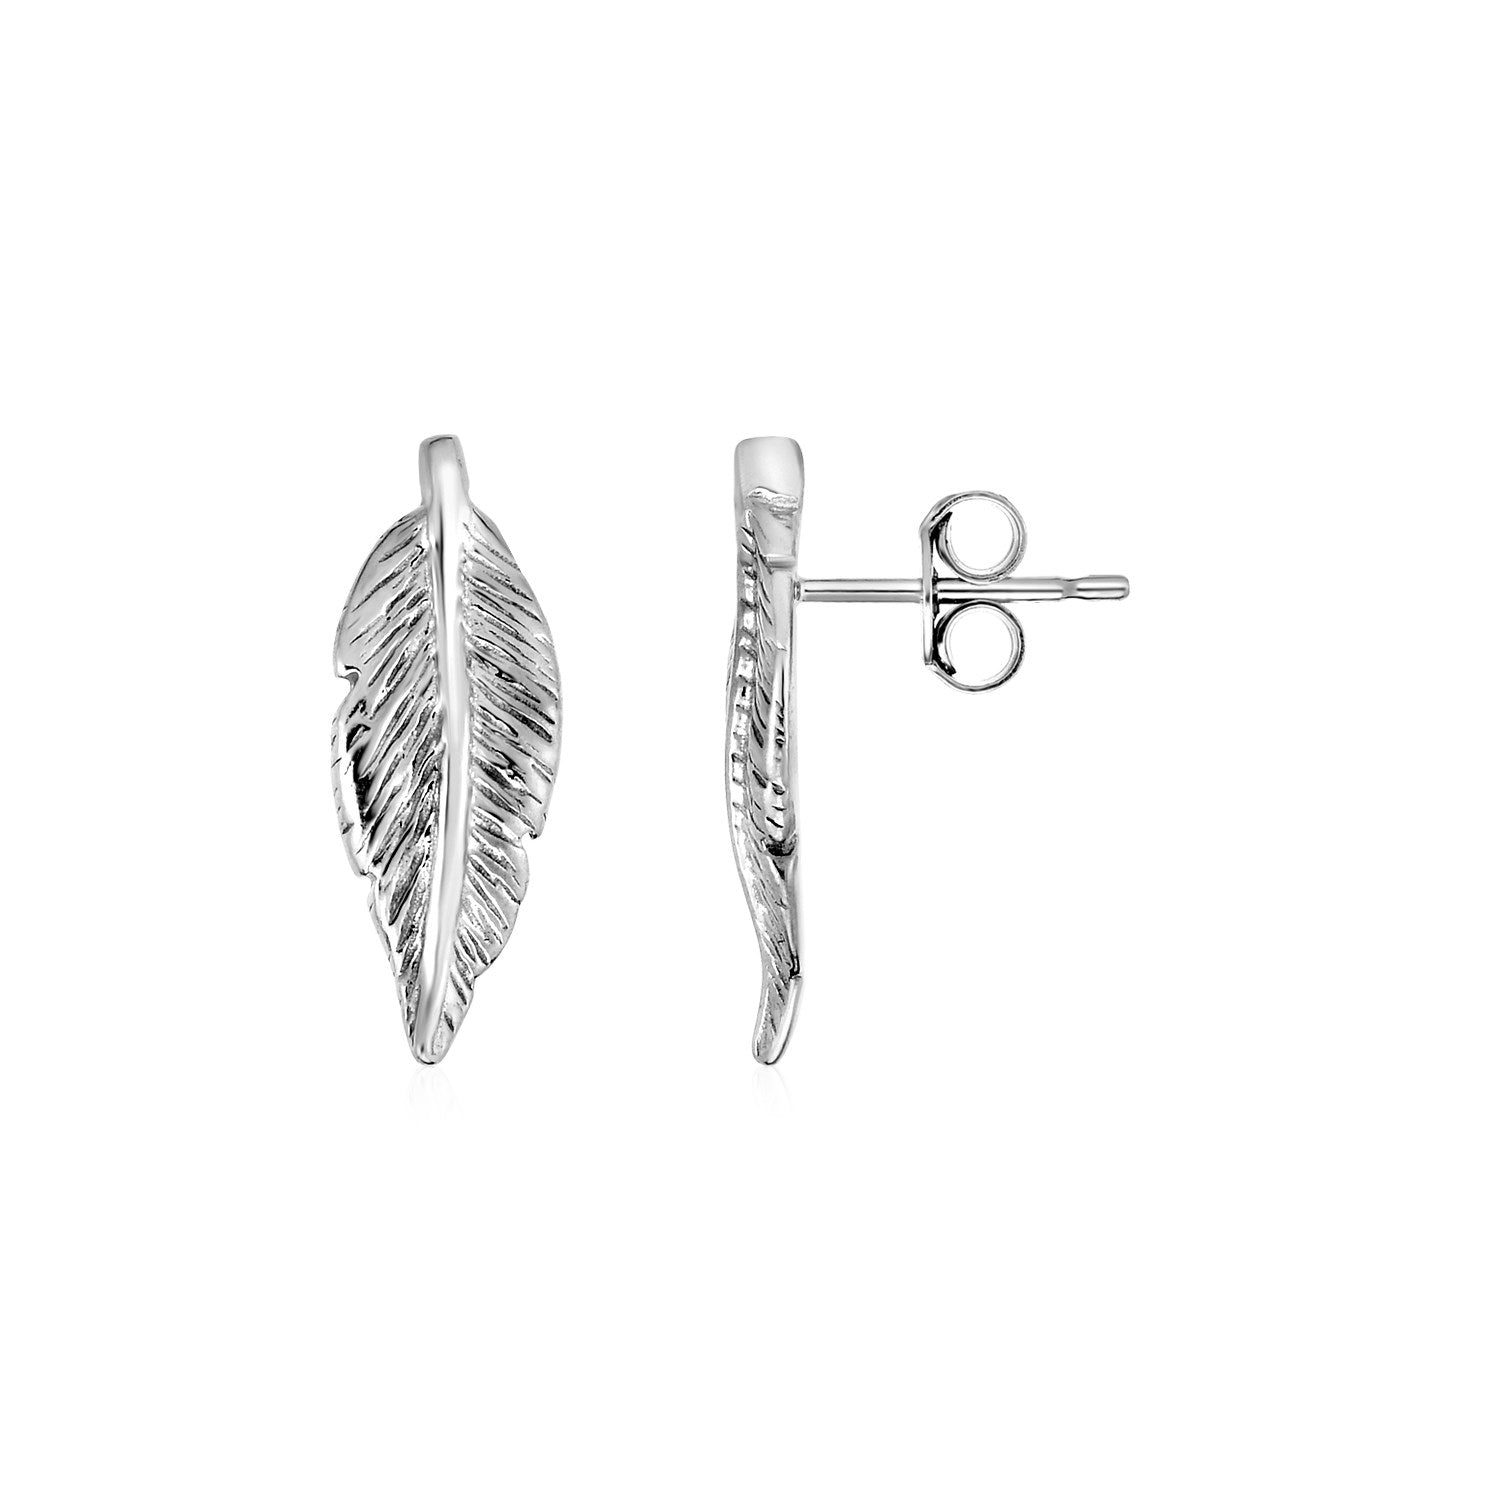 Textured Leaf Earrings in Sterling Silver